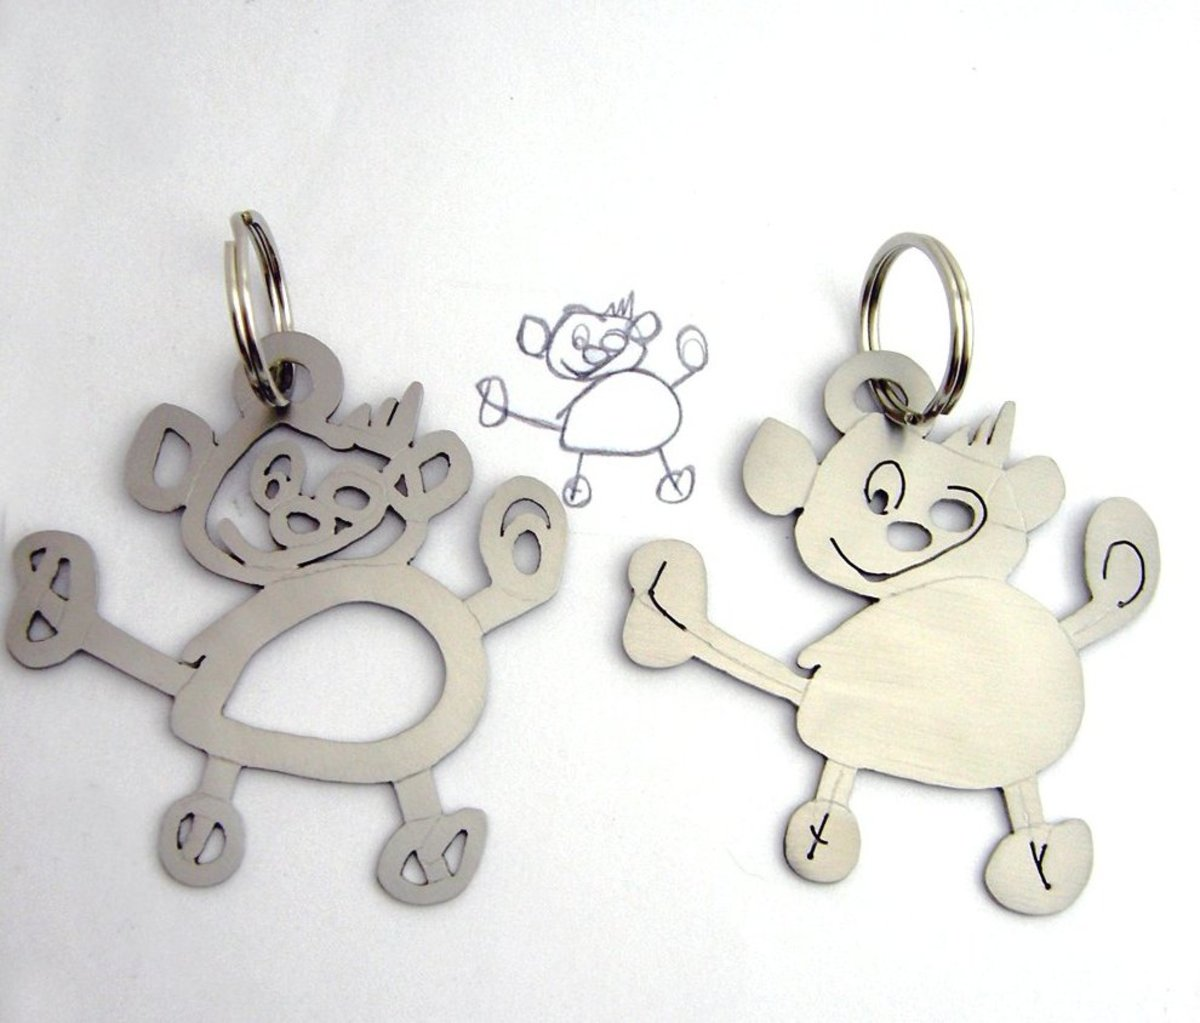 Moms can turn kid's doodles into keepsake key rings using polymer clay. Clever DIY gift for Father's Day.